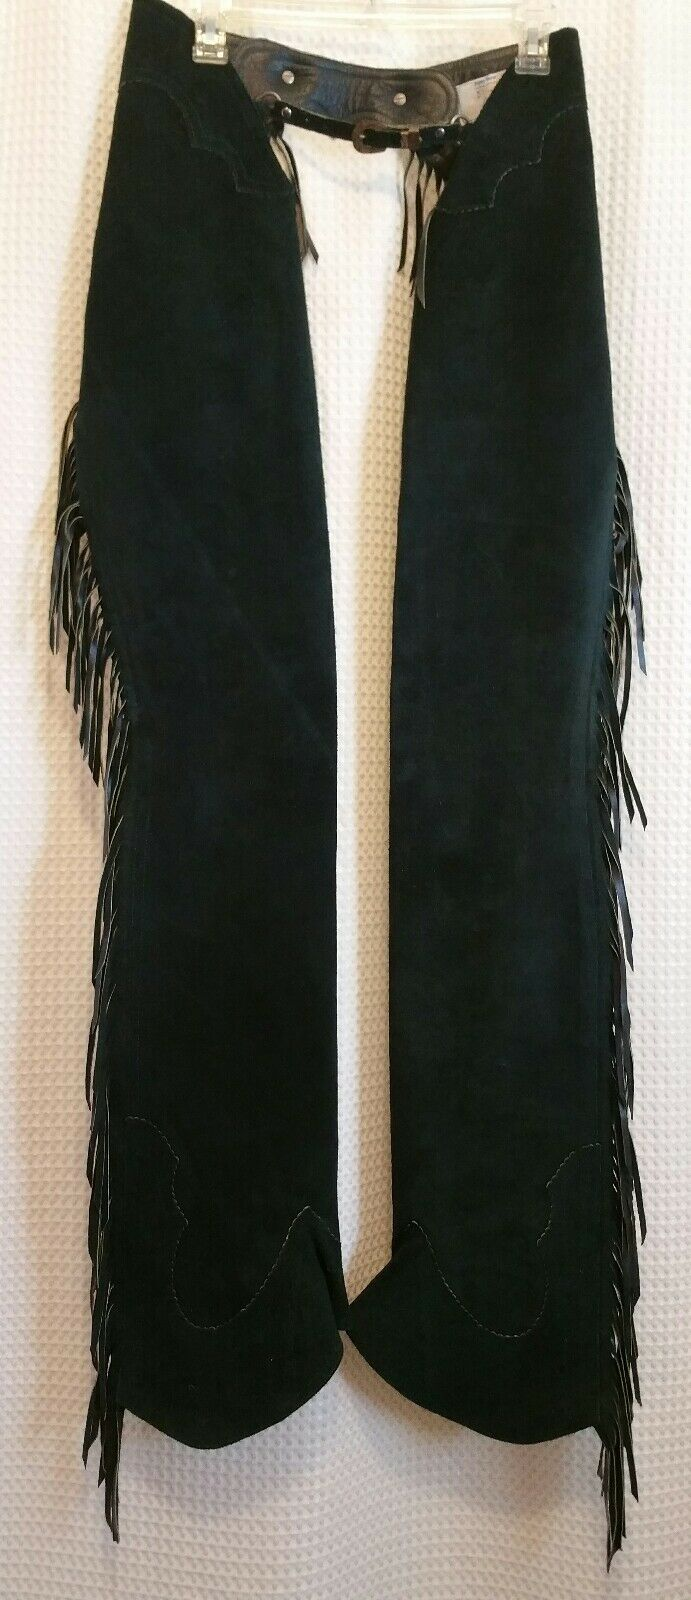 HOBBY HORSE Clothing Co. verde Pelle Suede Adult Chaps w/ Fringe